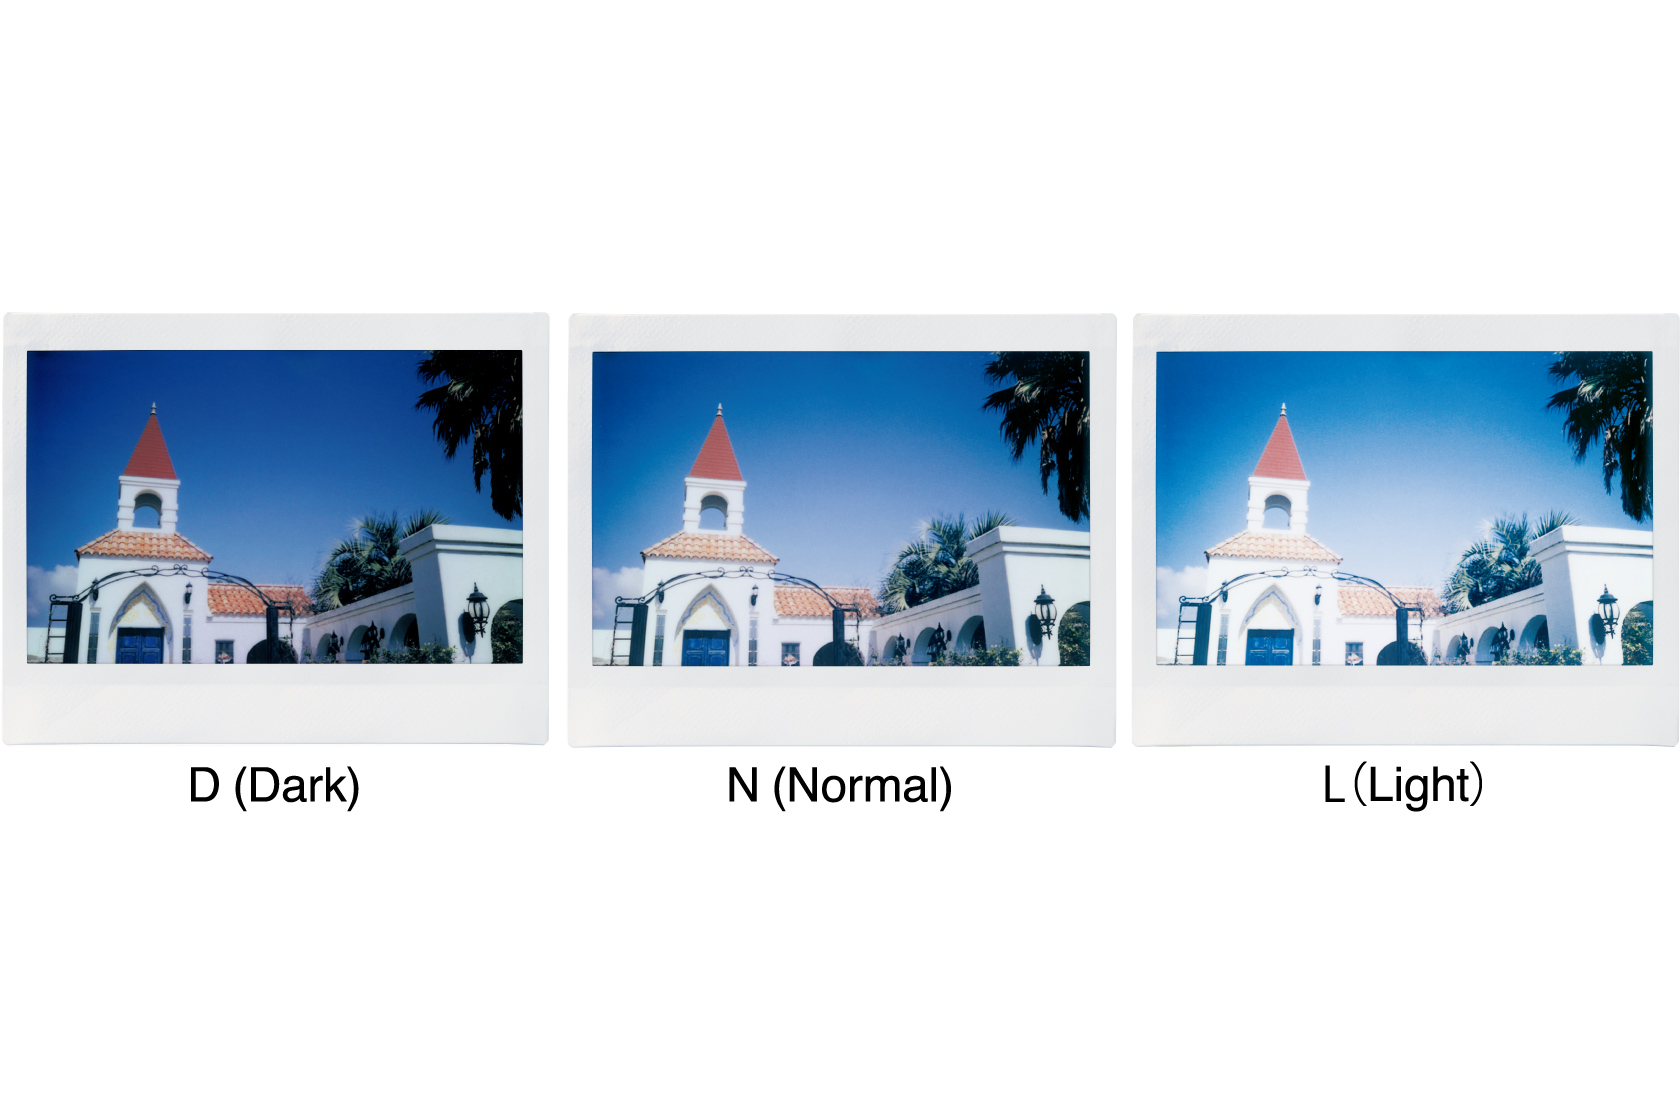 [photo] Sample photos of a building in Dark, Normal and Light exposure modes of the Instax WIDE 300 camera